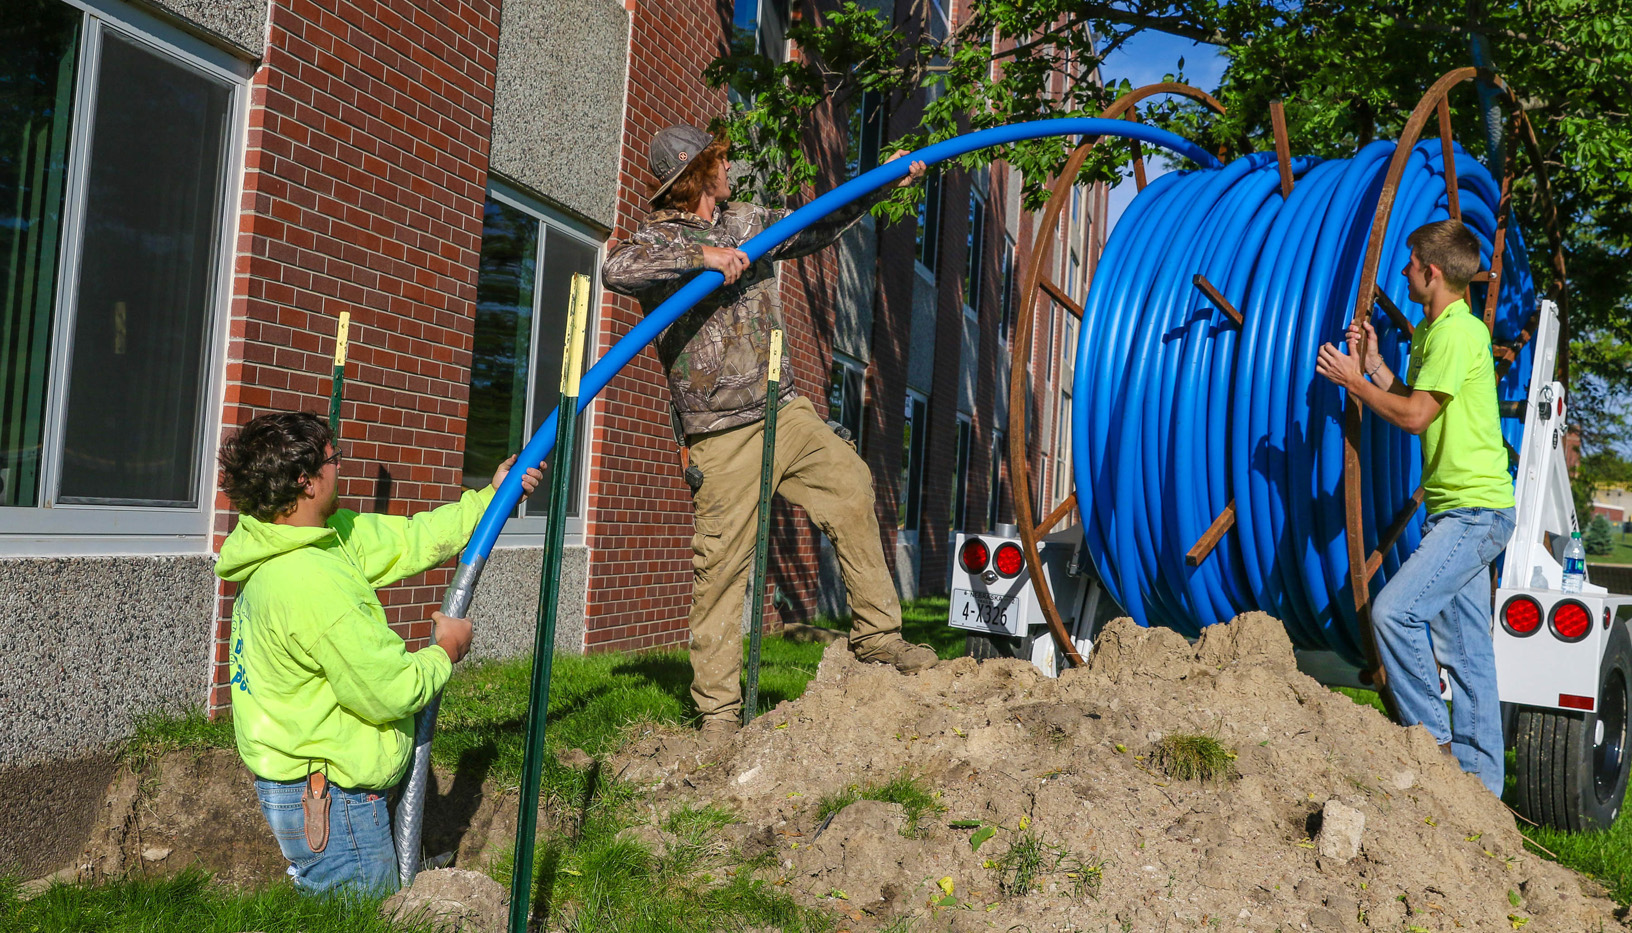 Myers Construction of Broken Bow workers, from left, Jake McCormick, Slade Russell and Collin Hoffman roll out tubing that is part of new fiber optic ring installation that will improve information technology services at UNK. (Photo by Corbey R. Dorsey/UNK Communications)